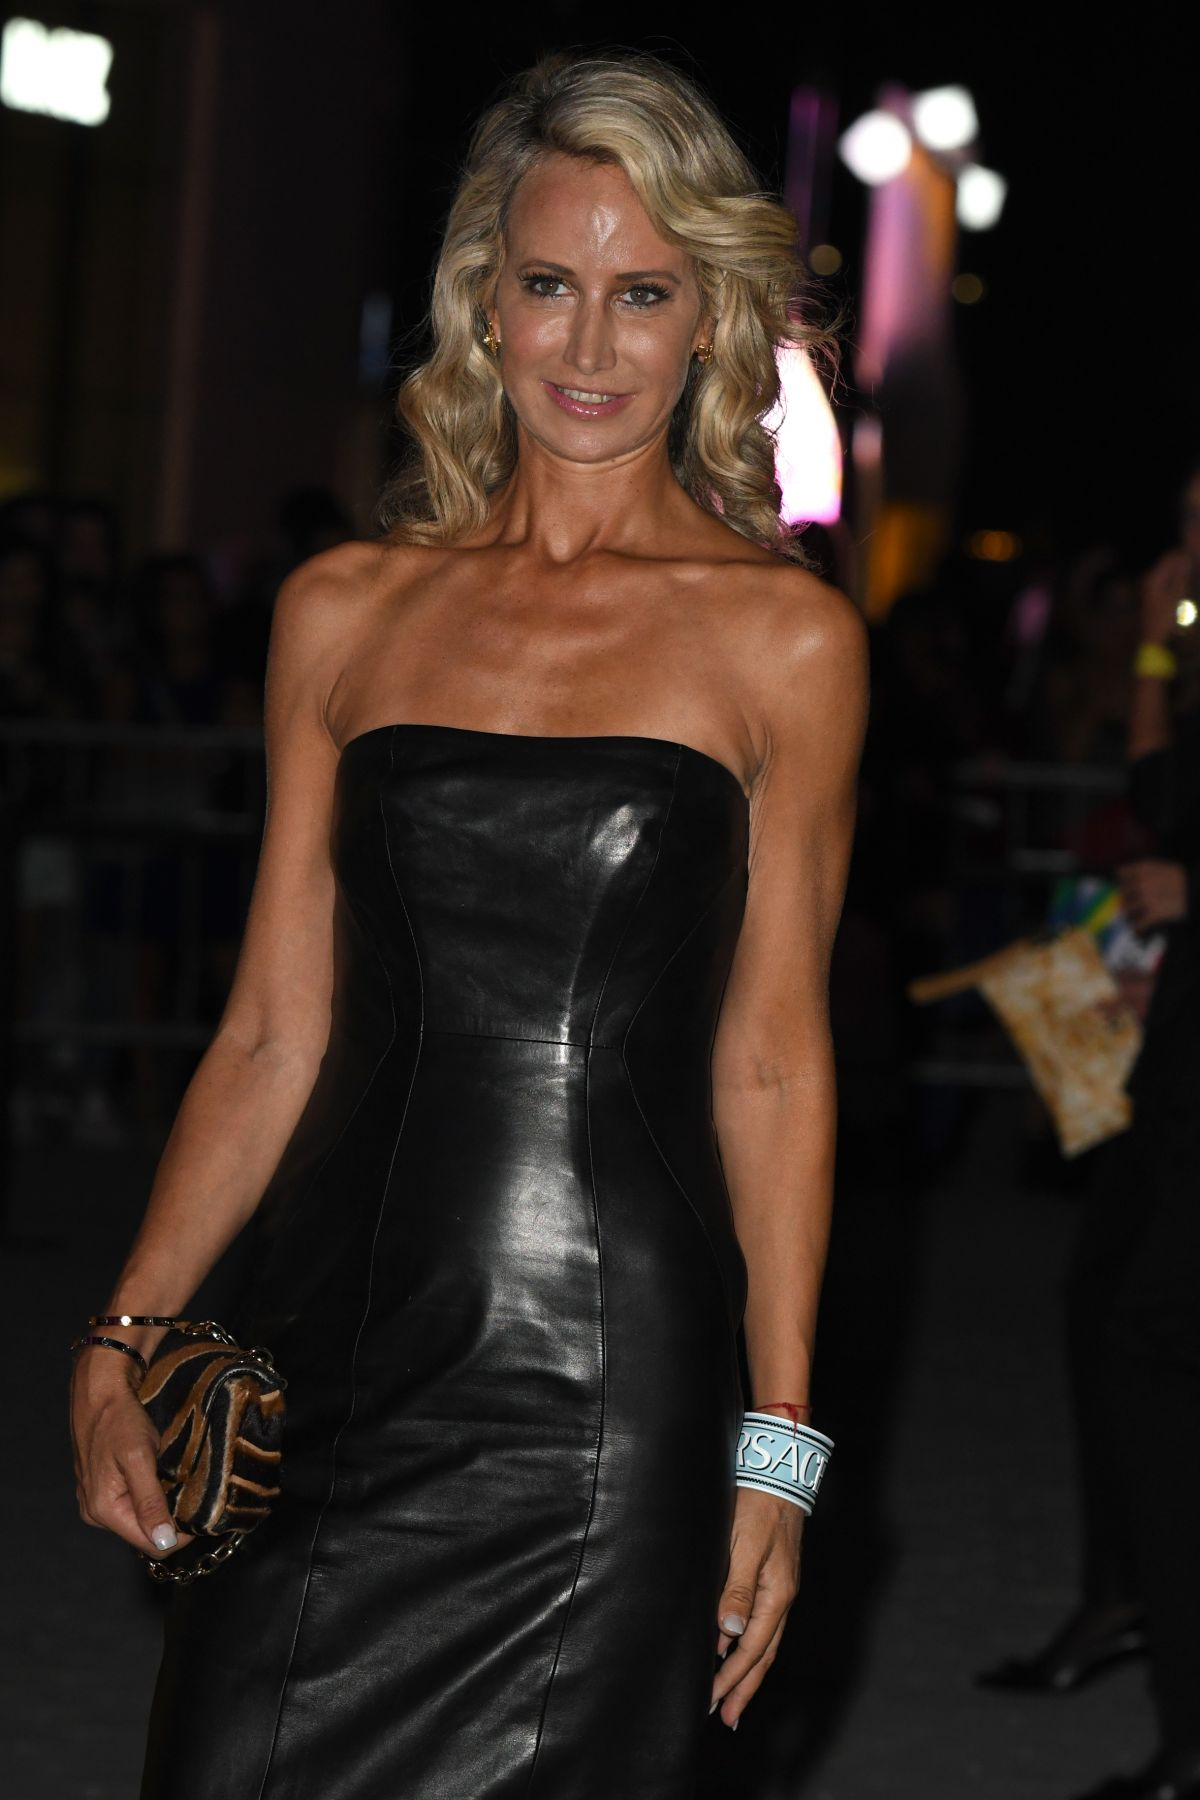 2019 Lady Victoria Hervey nudes (93 photos), Sexy, Leaked, Selfie, lingerie 2019